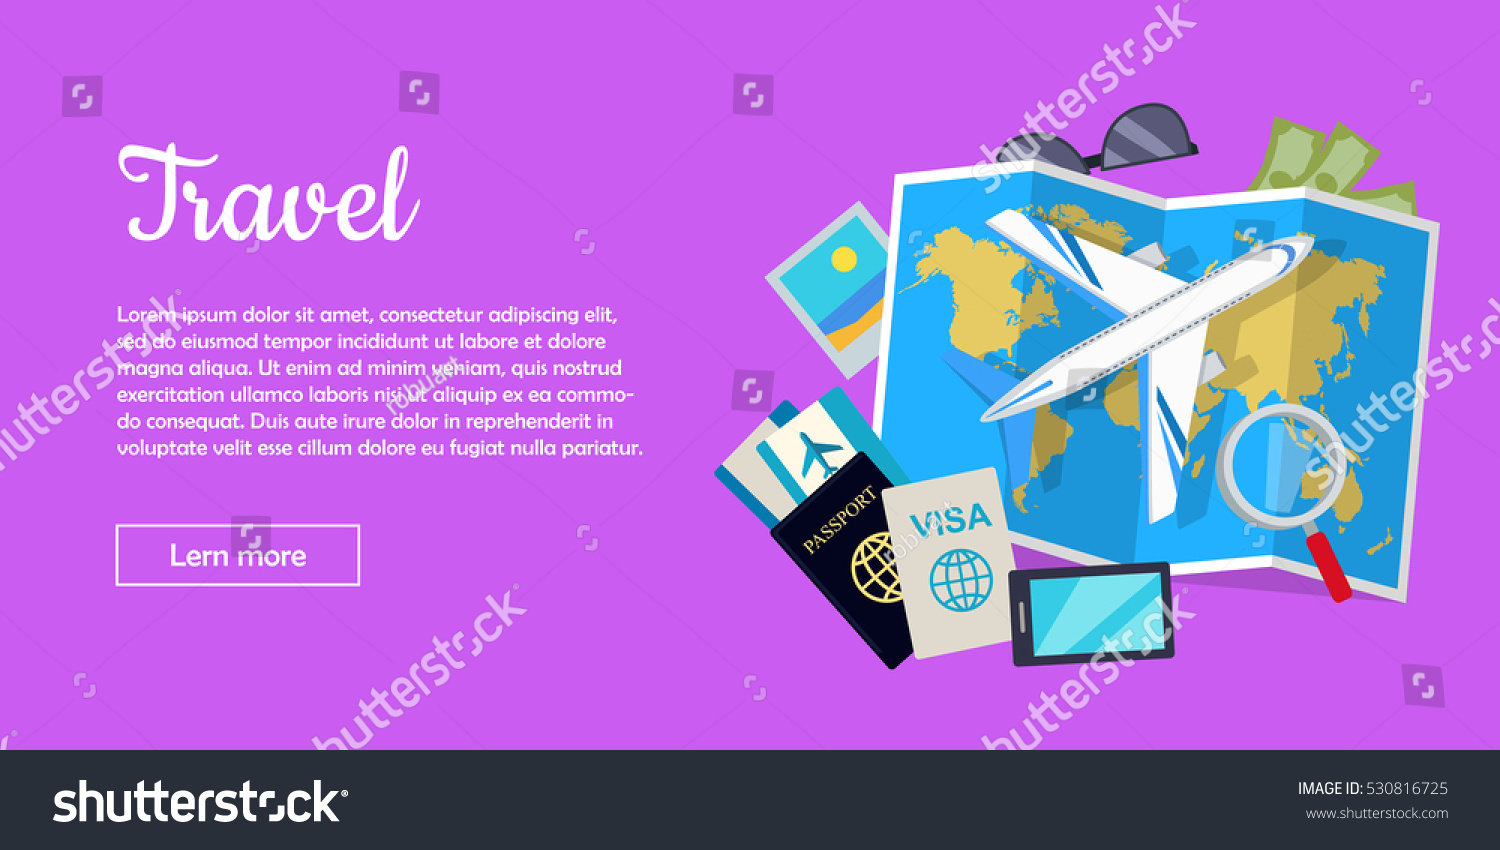 Travel web banner aircraft suitcase luggage stock vector 530816725 aircraft suitcase with luggage world map air tickets gumiabroncs Images